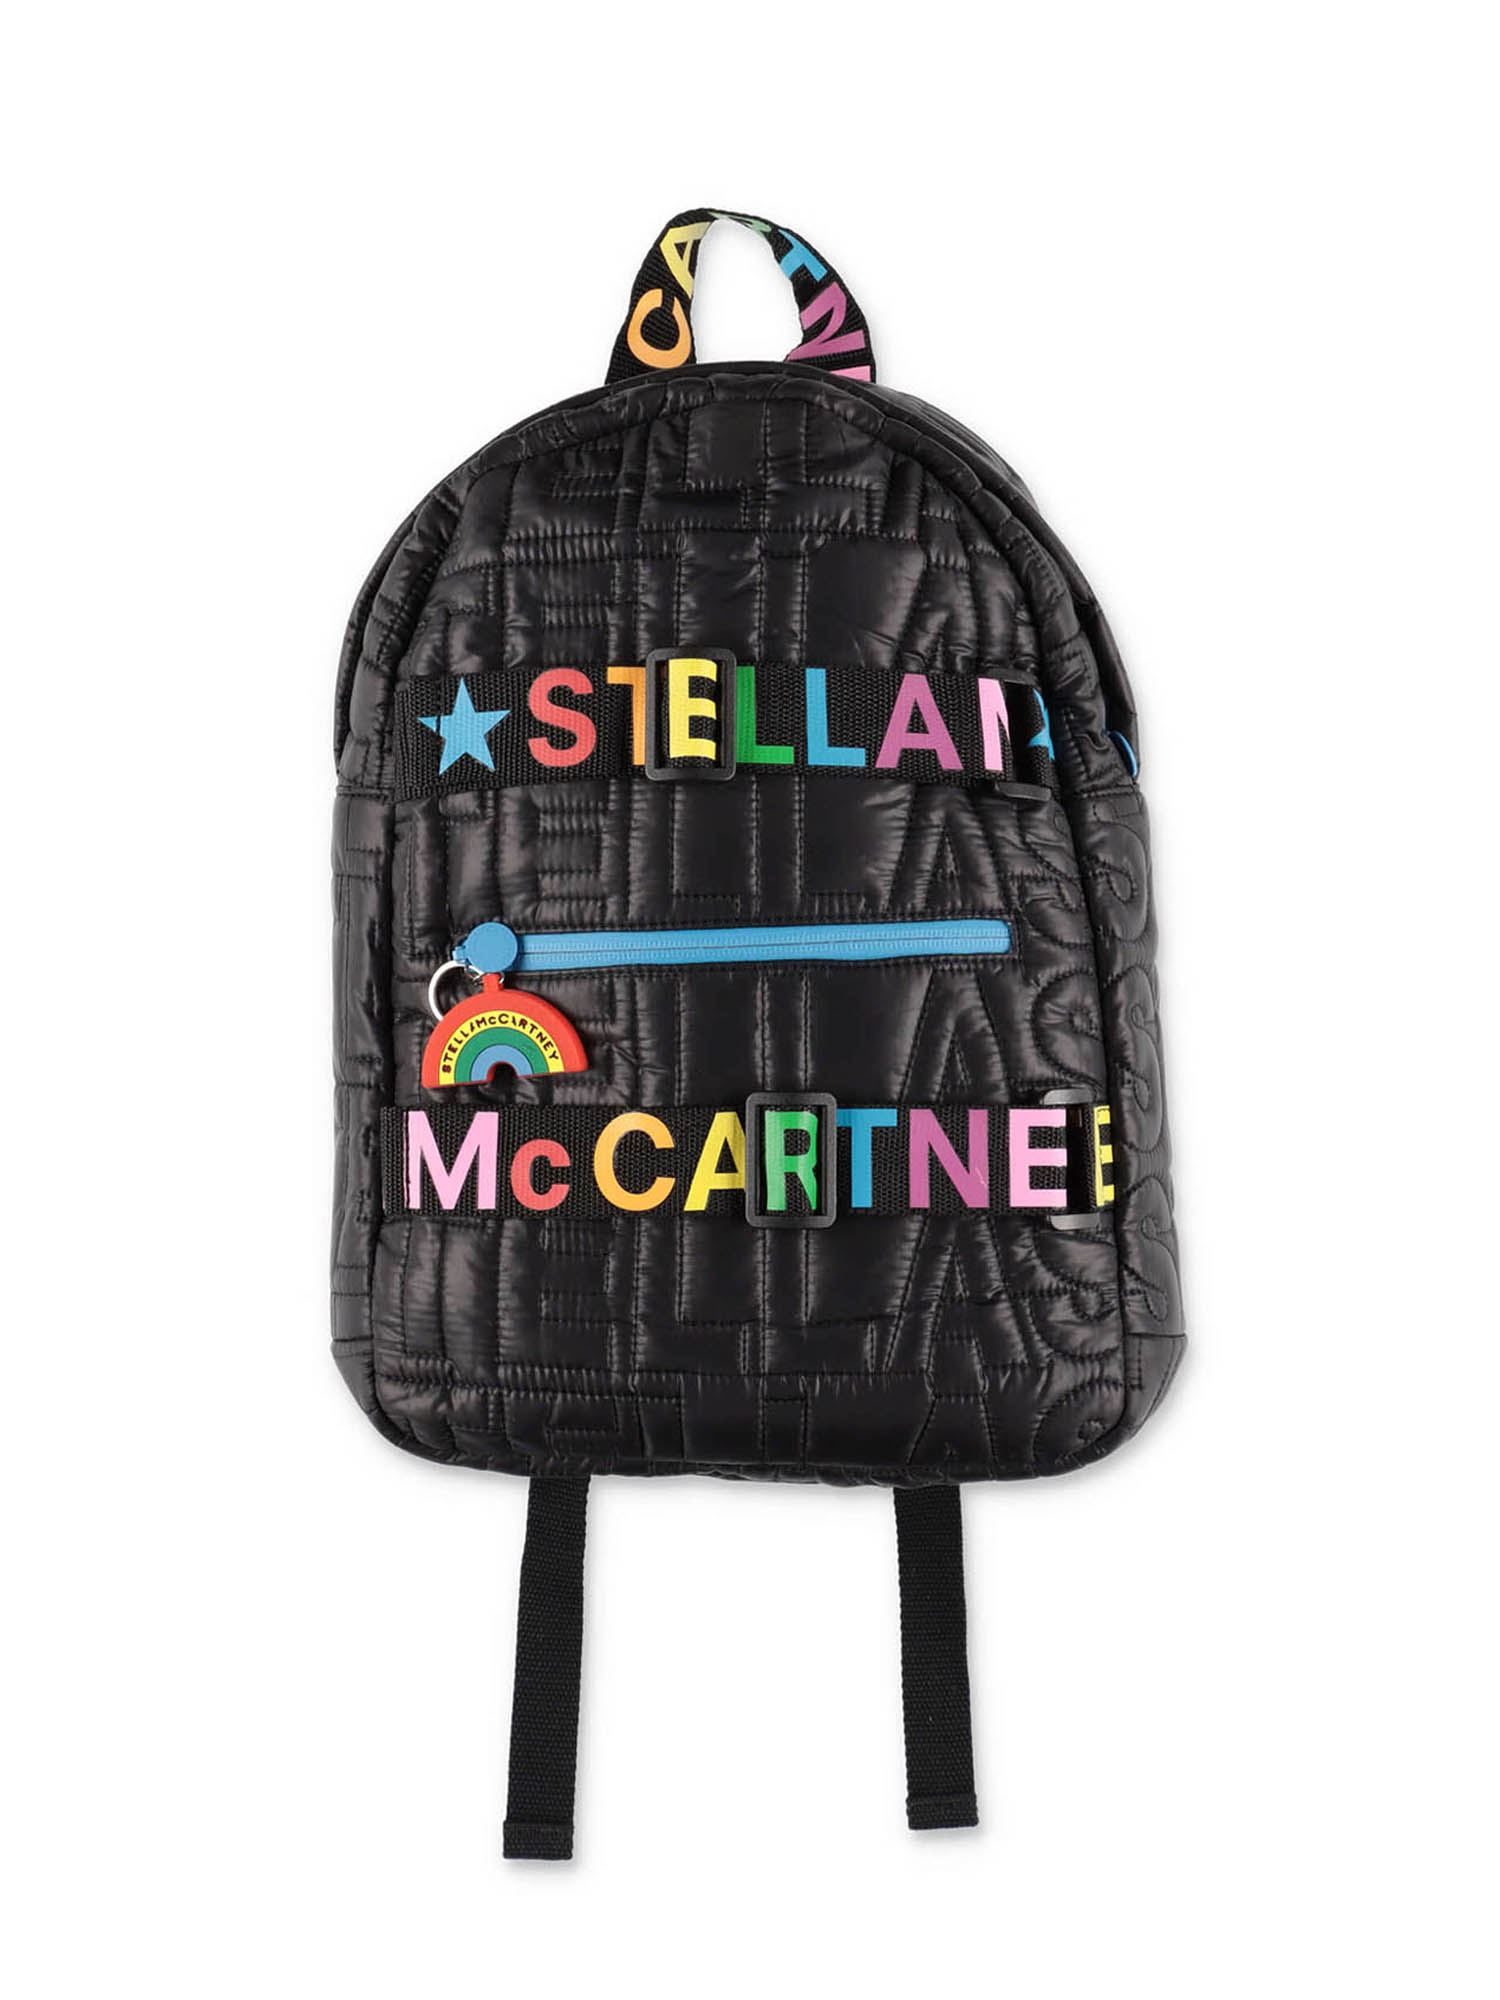 STELLA MCCARTNEY BLACK QUILTED BACKPACK